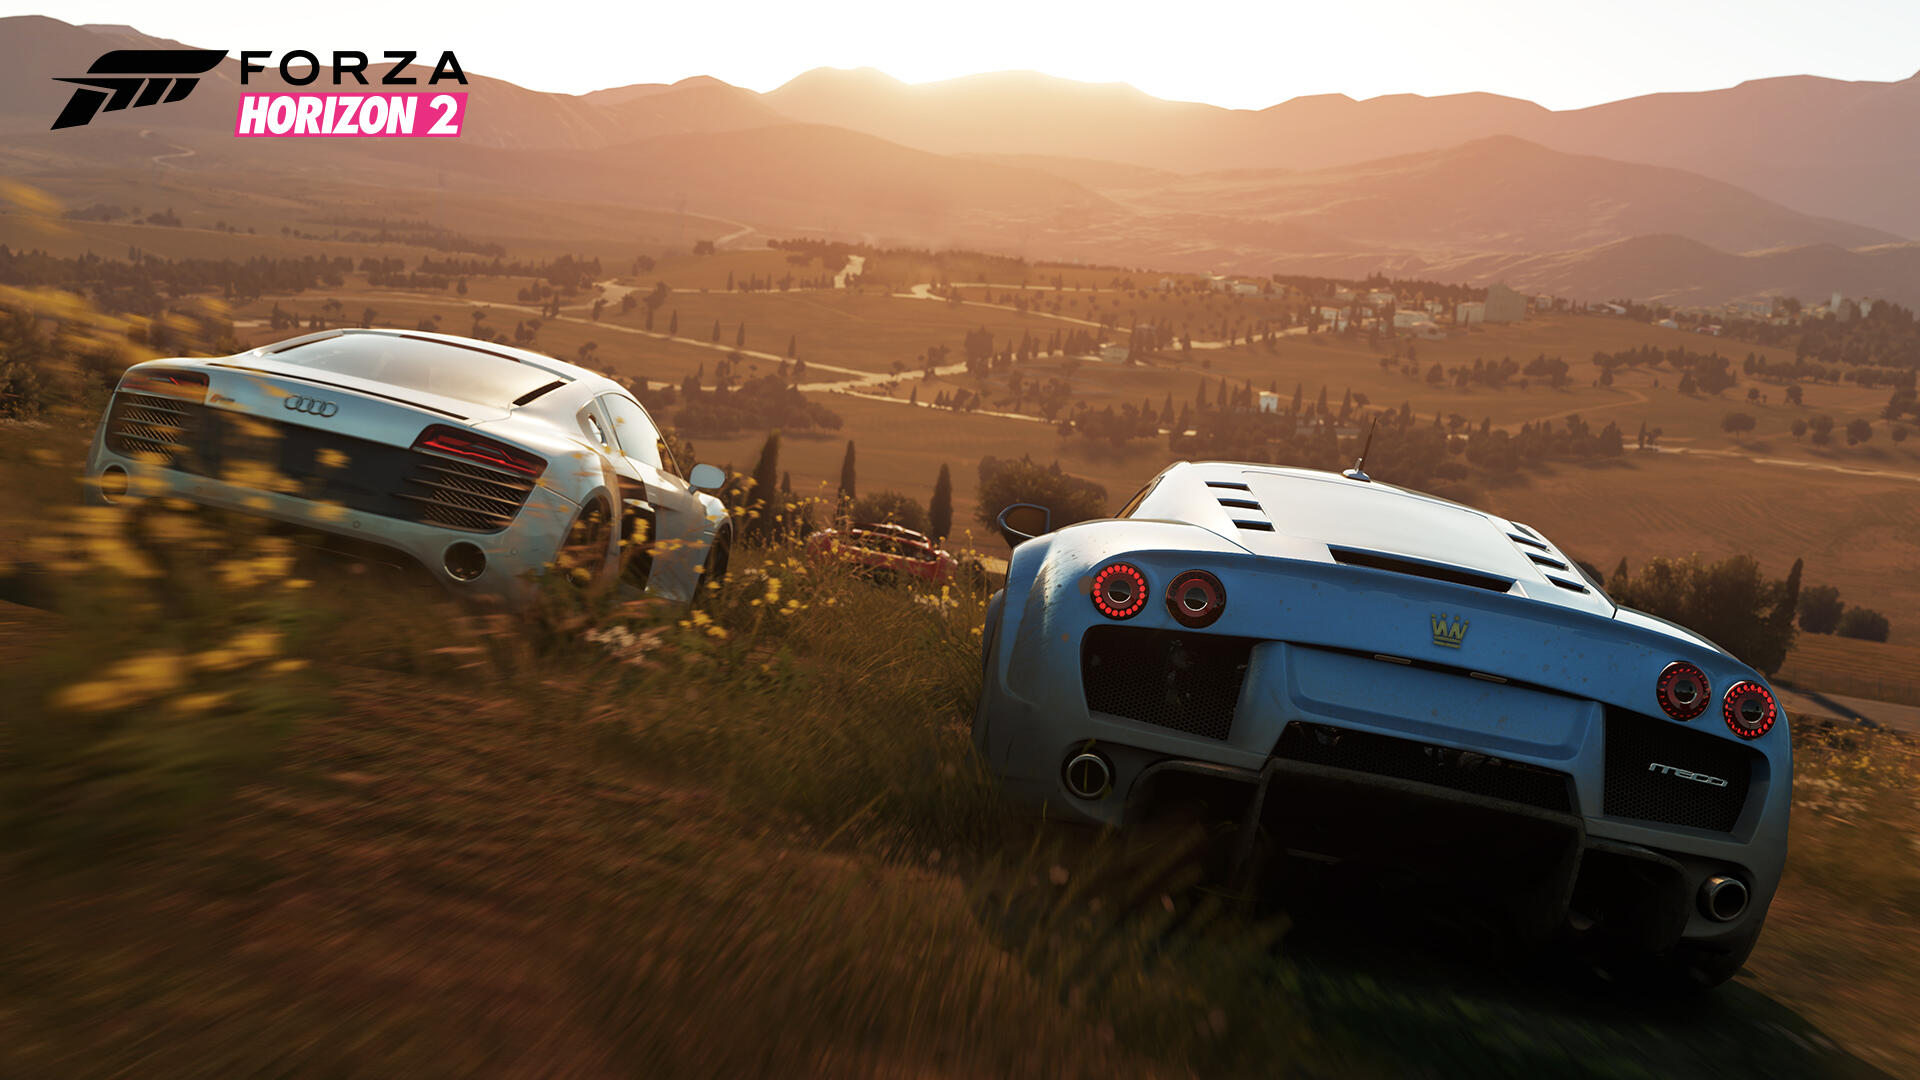 Forza Horizon 2 Xbox One Review: One of the All-Time Great Racers